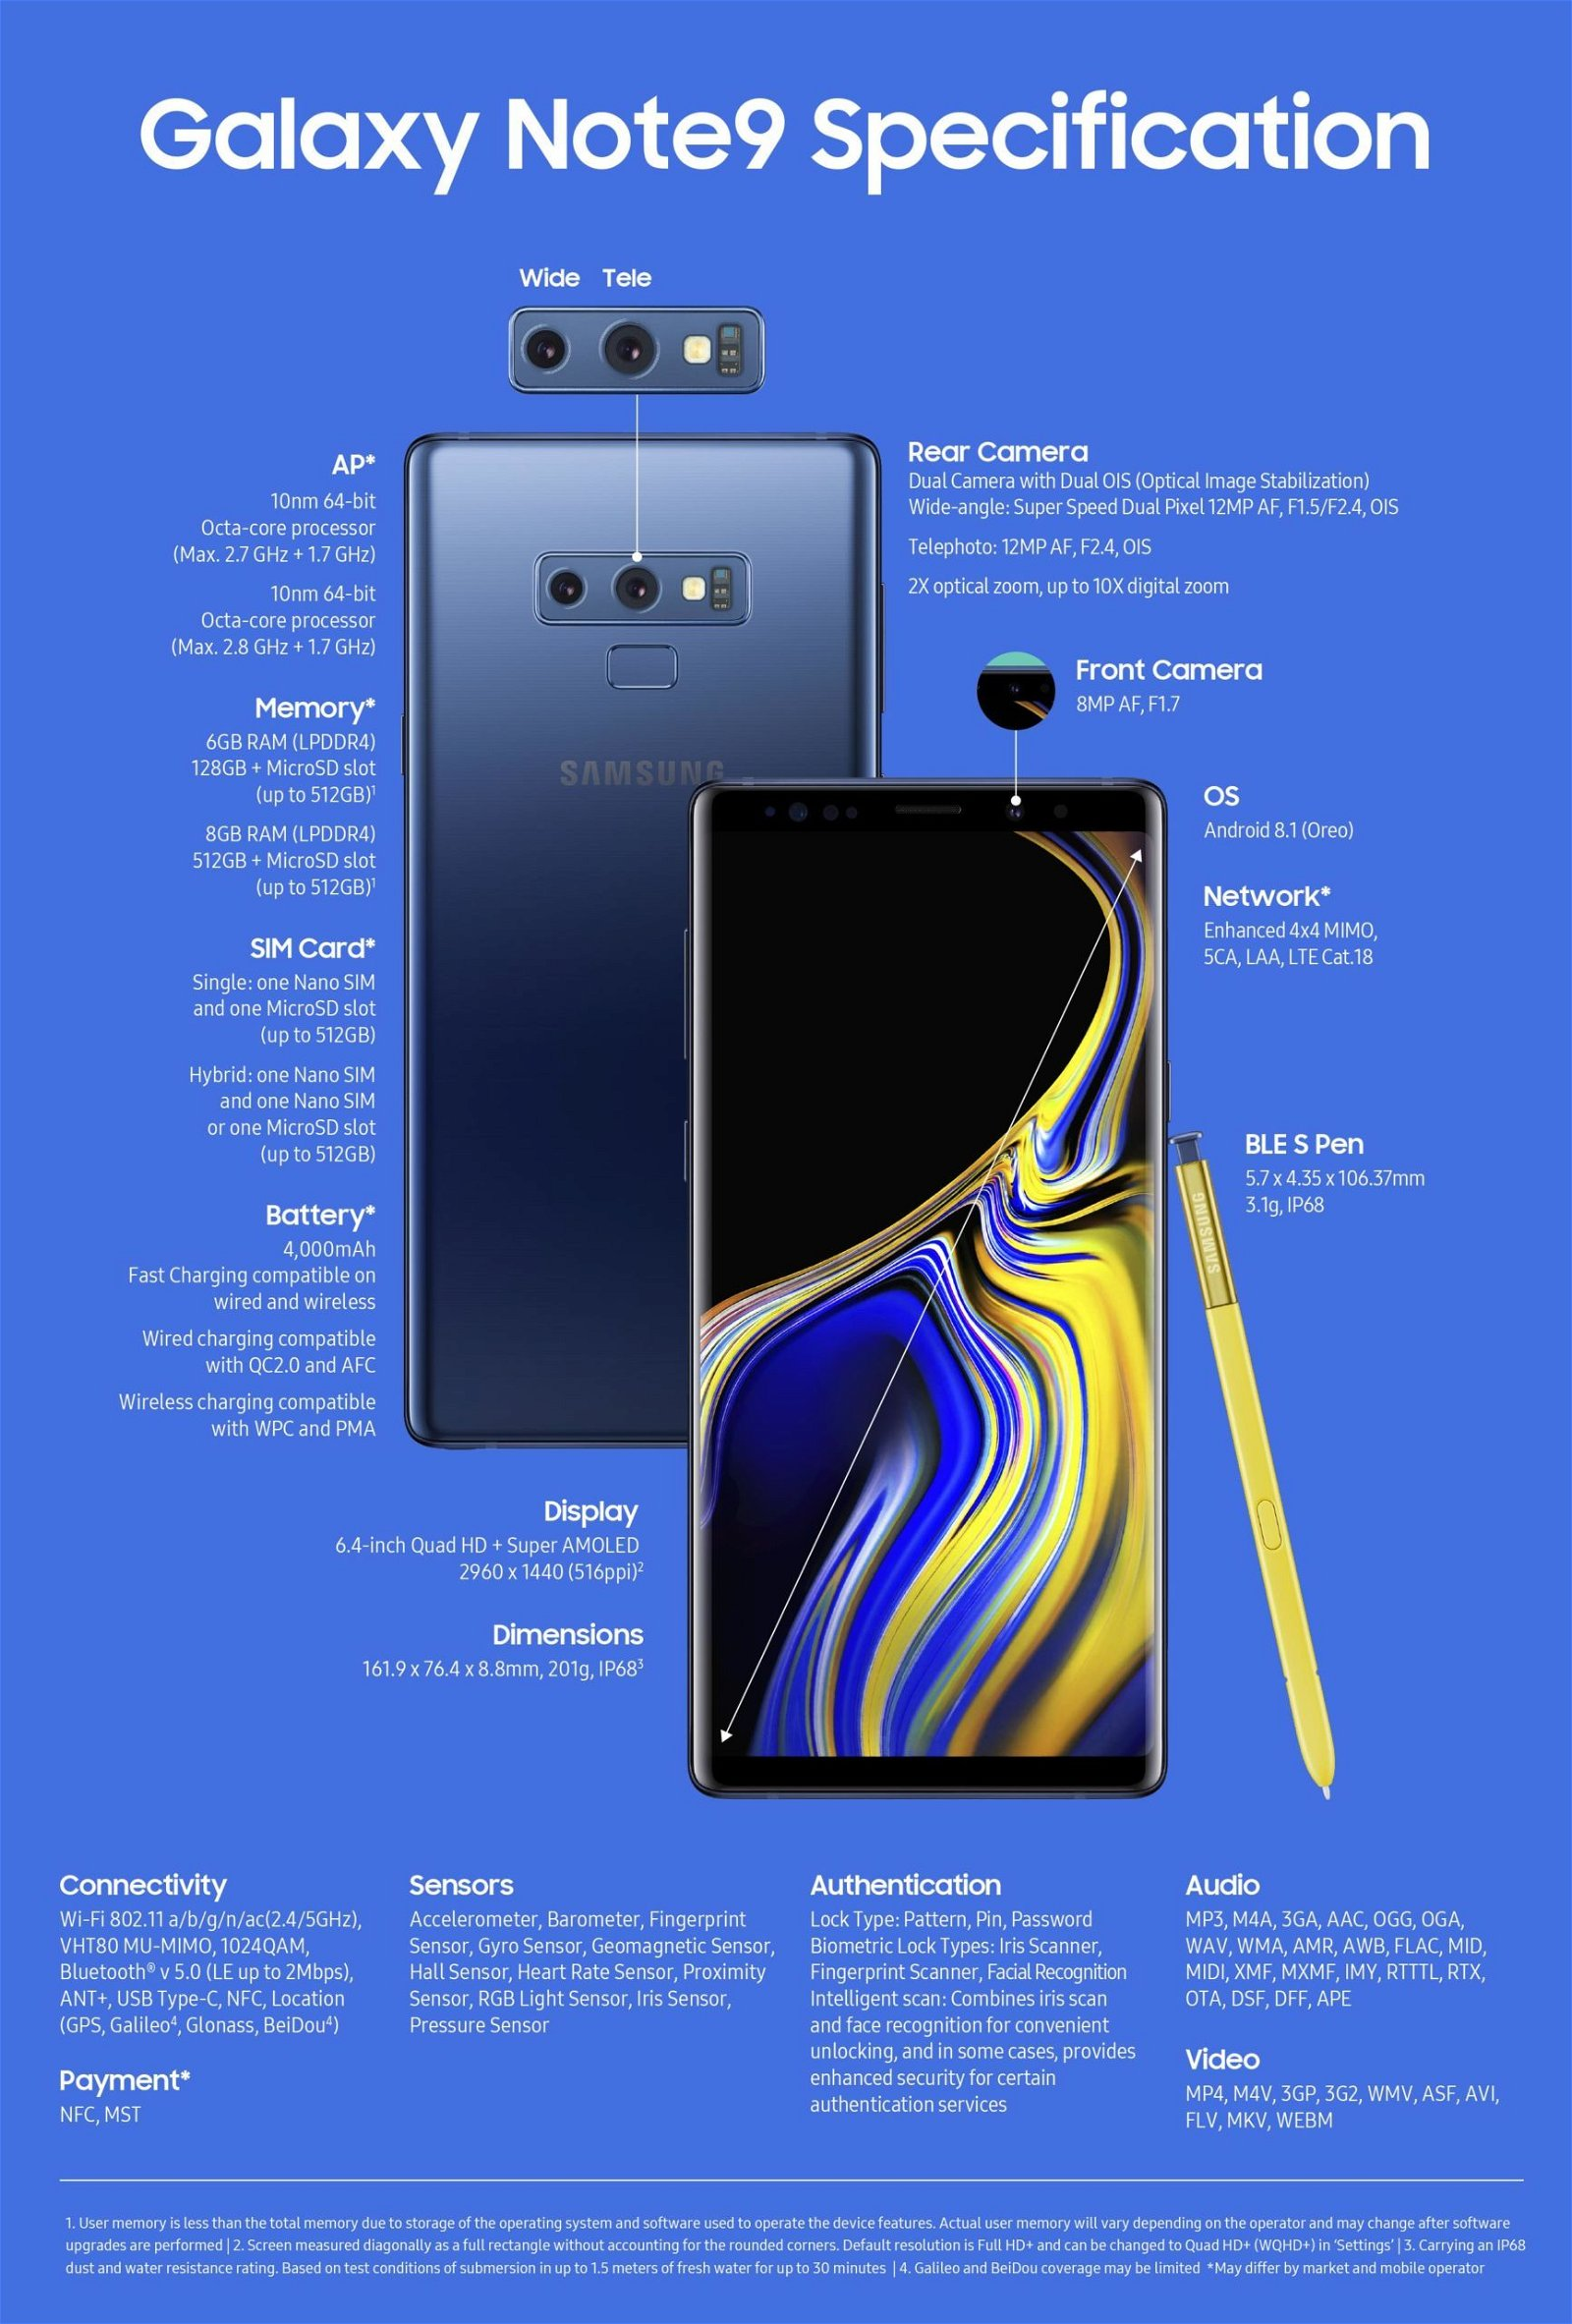 Samsung Galaxy Note 9: Technical Specifications 2